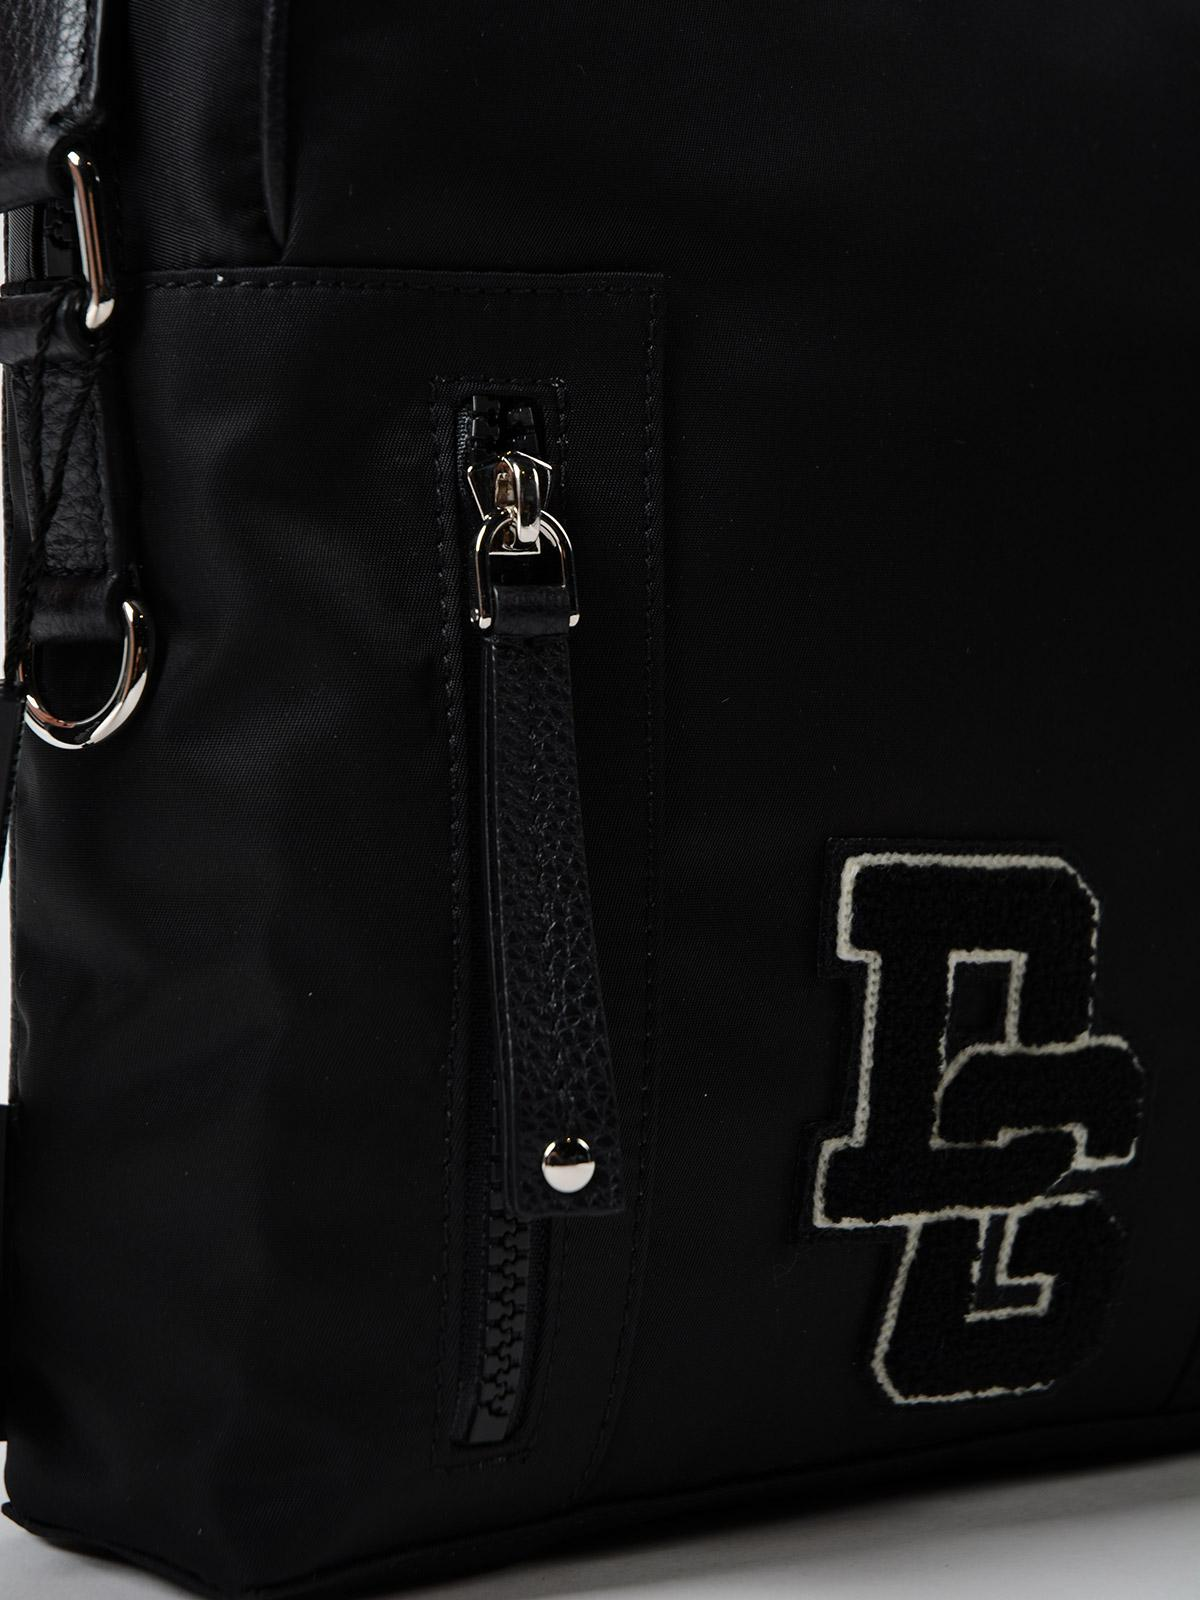 Dolce & Gabbana Synthetic Crossbody Bag Logo Dg Patch in Black